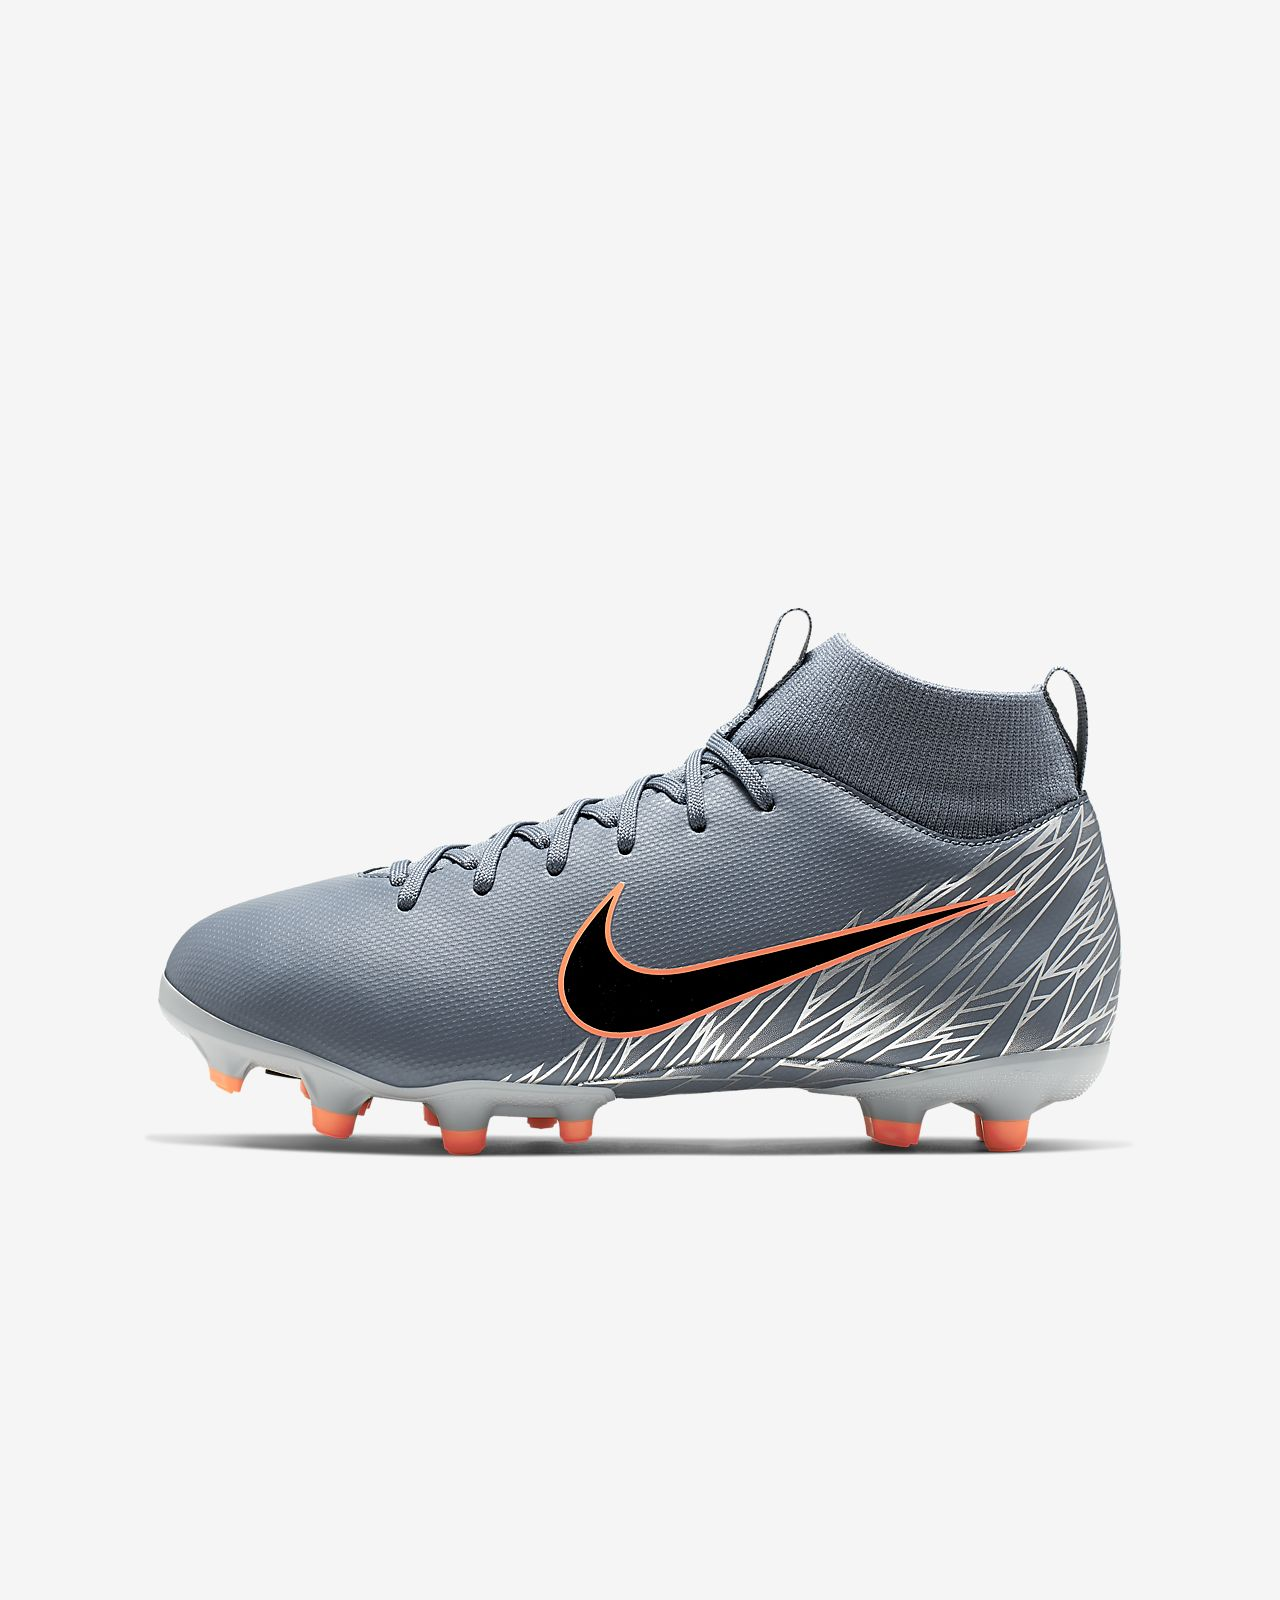 6a14ec2db Nike Jr. Superfly 6 Academy MG Little Big Kids  Multi-Ground Soccer ...